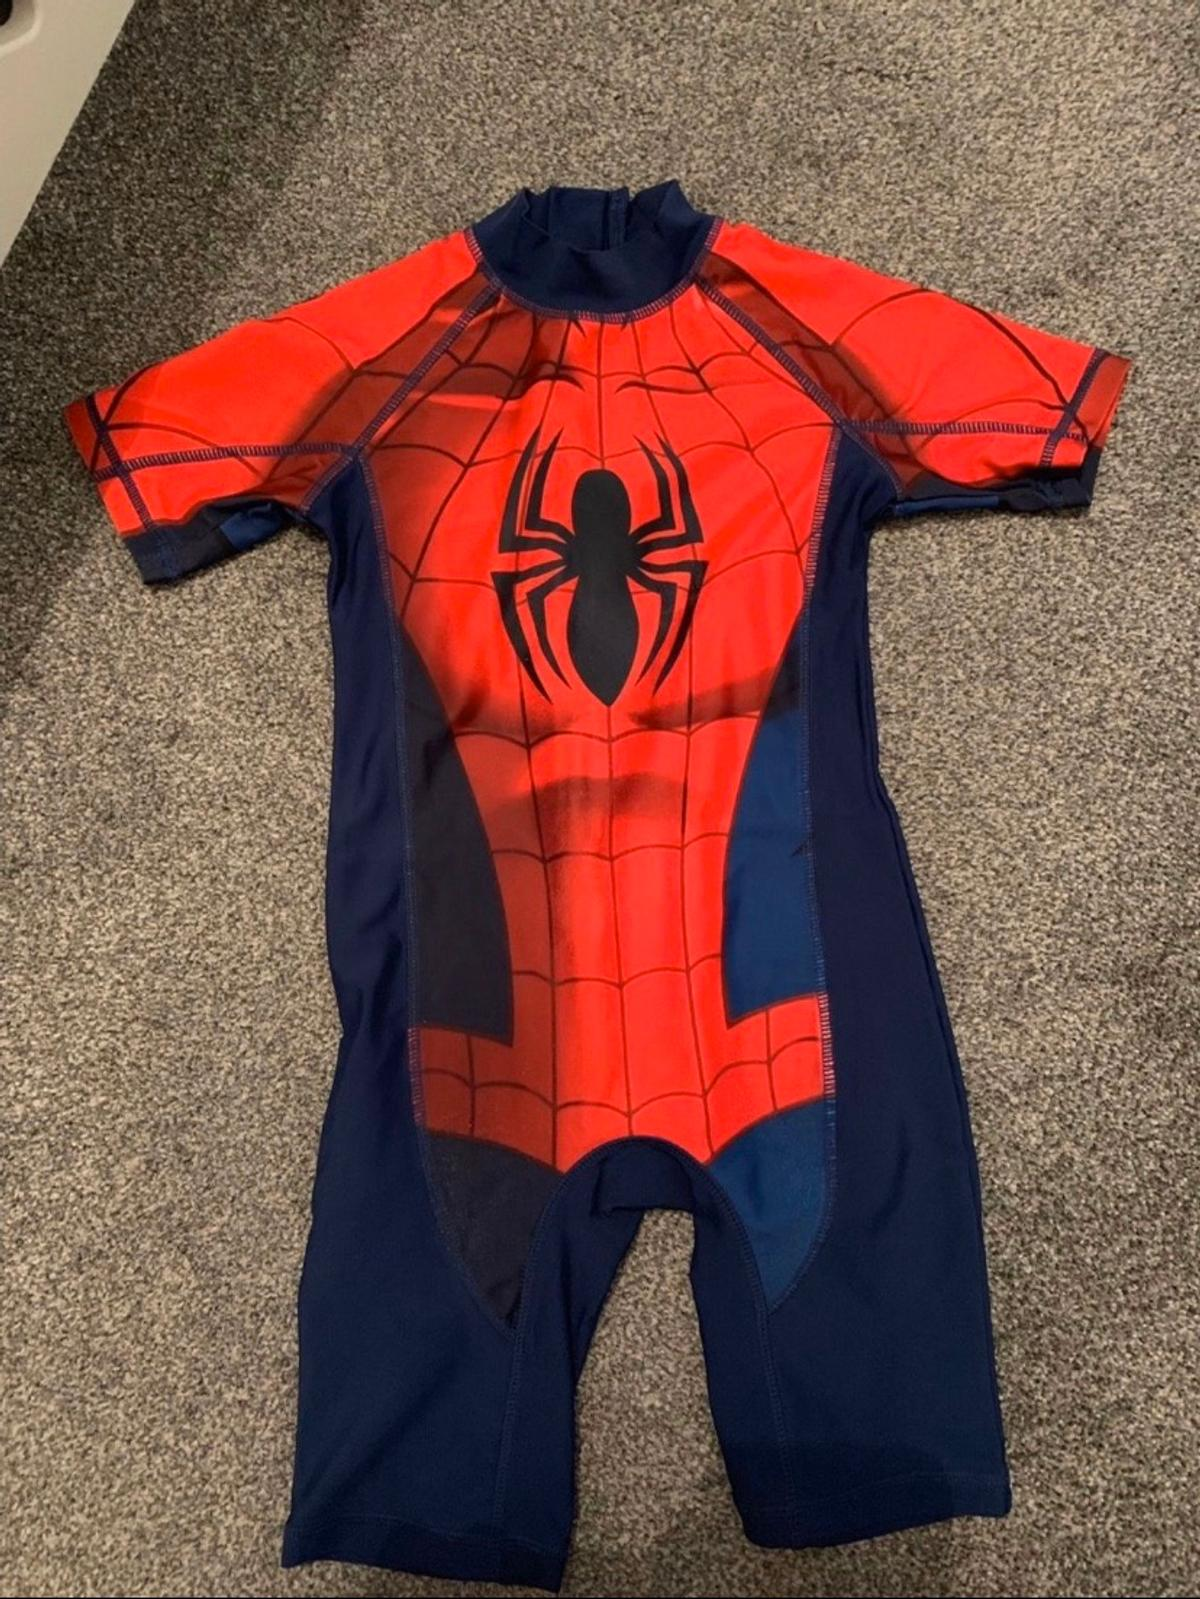 UPF 50+ Fabric Immaculate Condition  BATMAN Age 5-6  SPIDER-MAN Age 4-5  HULK Age 4-5  From a Smoke and Pet Home  Collection only, from Prescot